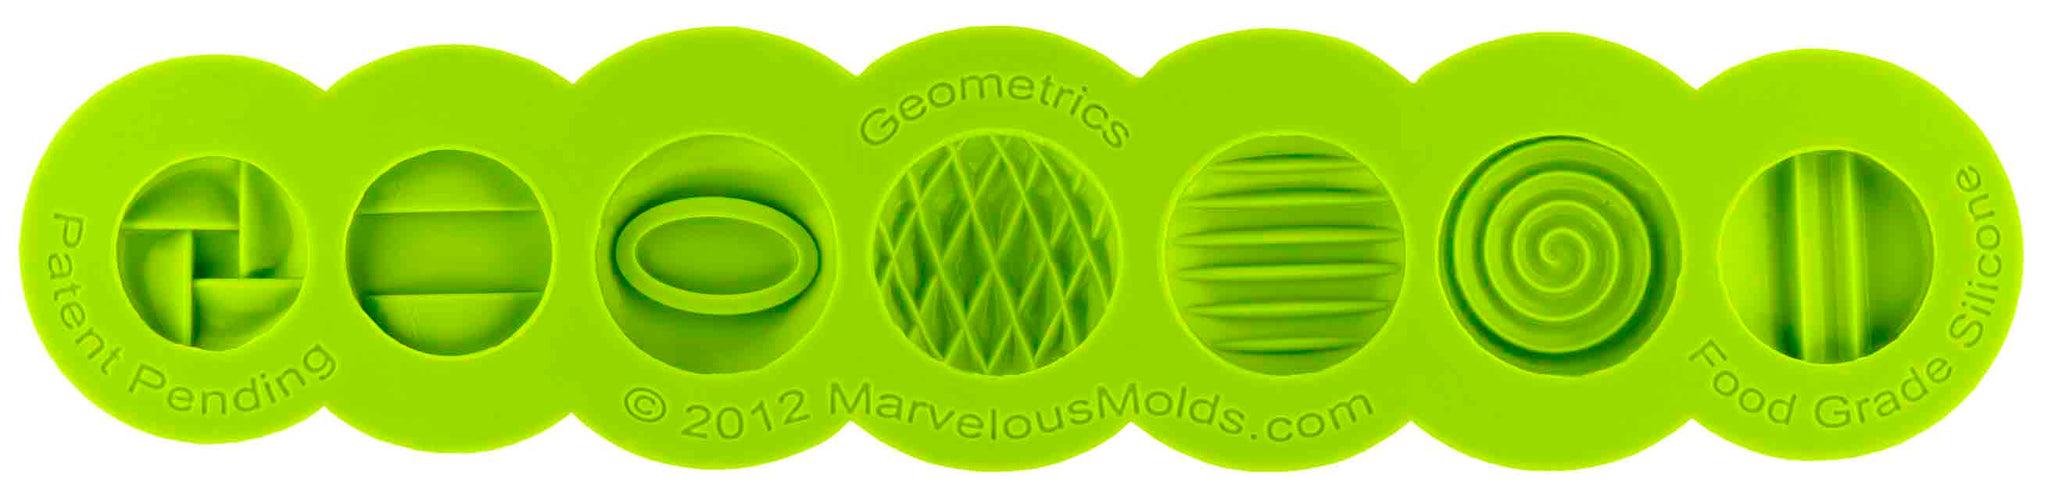 Geometrics Button Mold - Dragonfly Cake Supply, Alberta, Canada